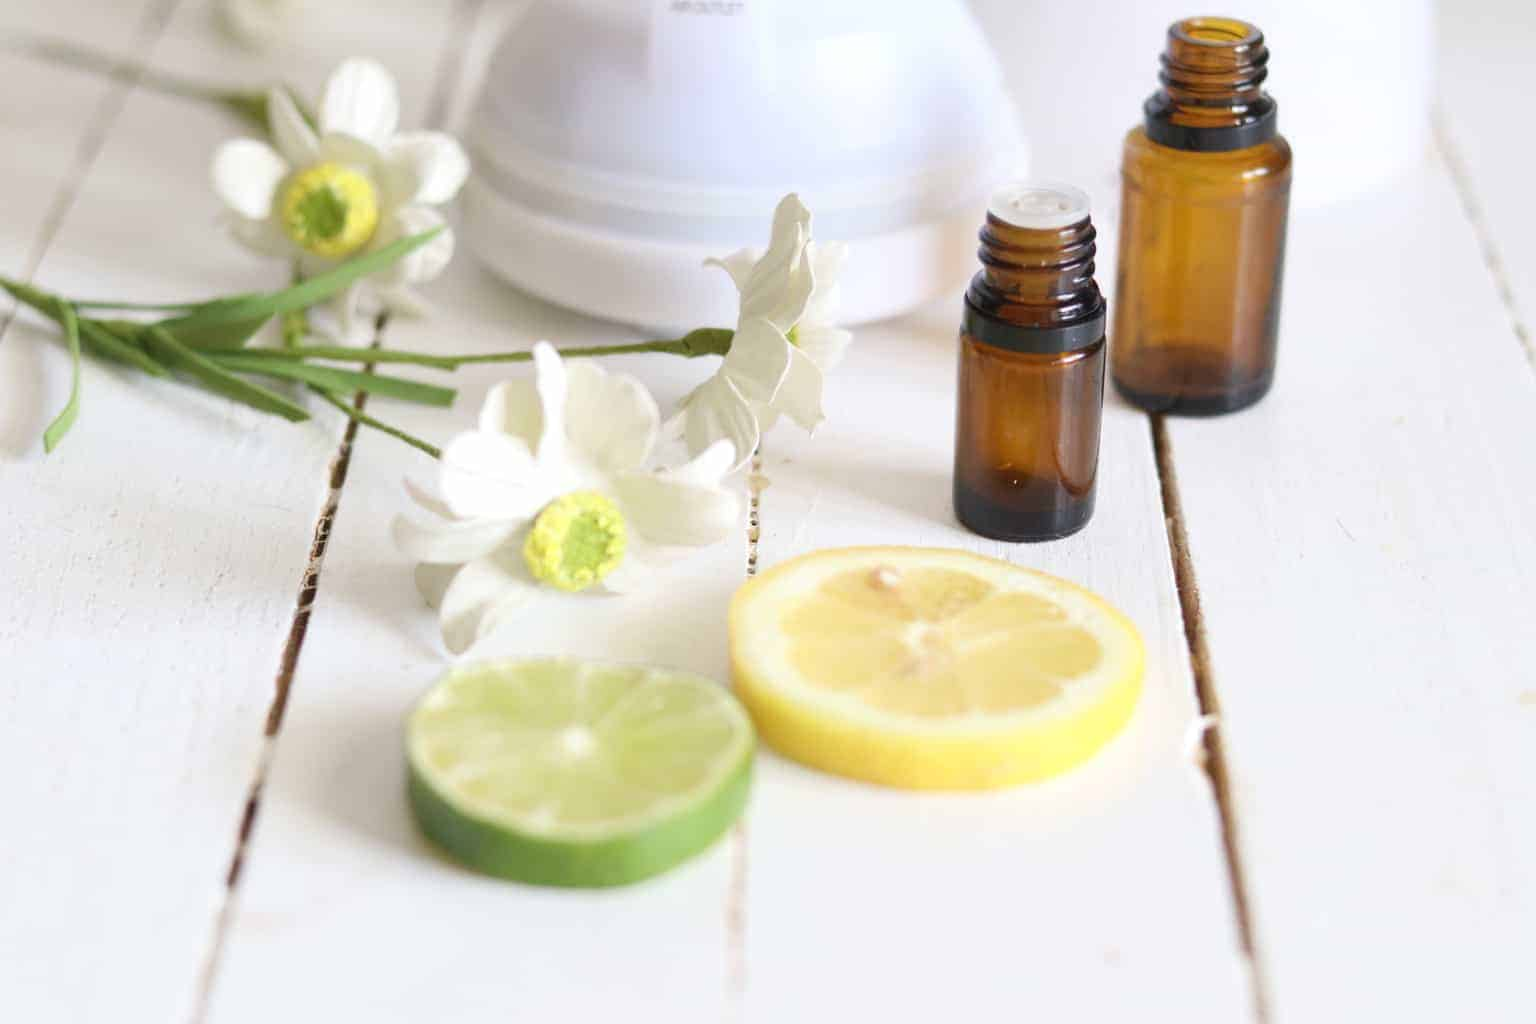 essential oil bottles and citrus fruit